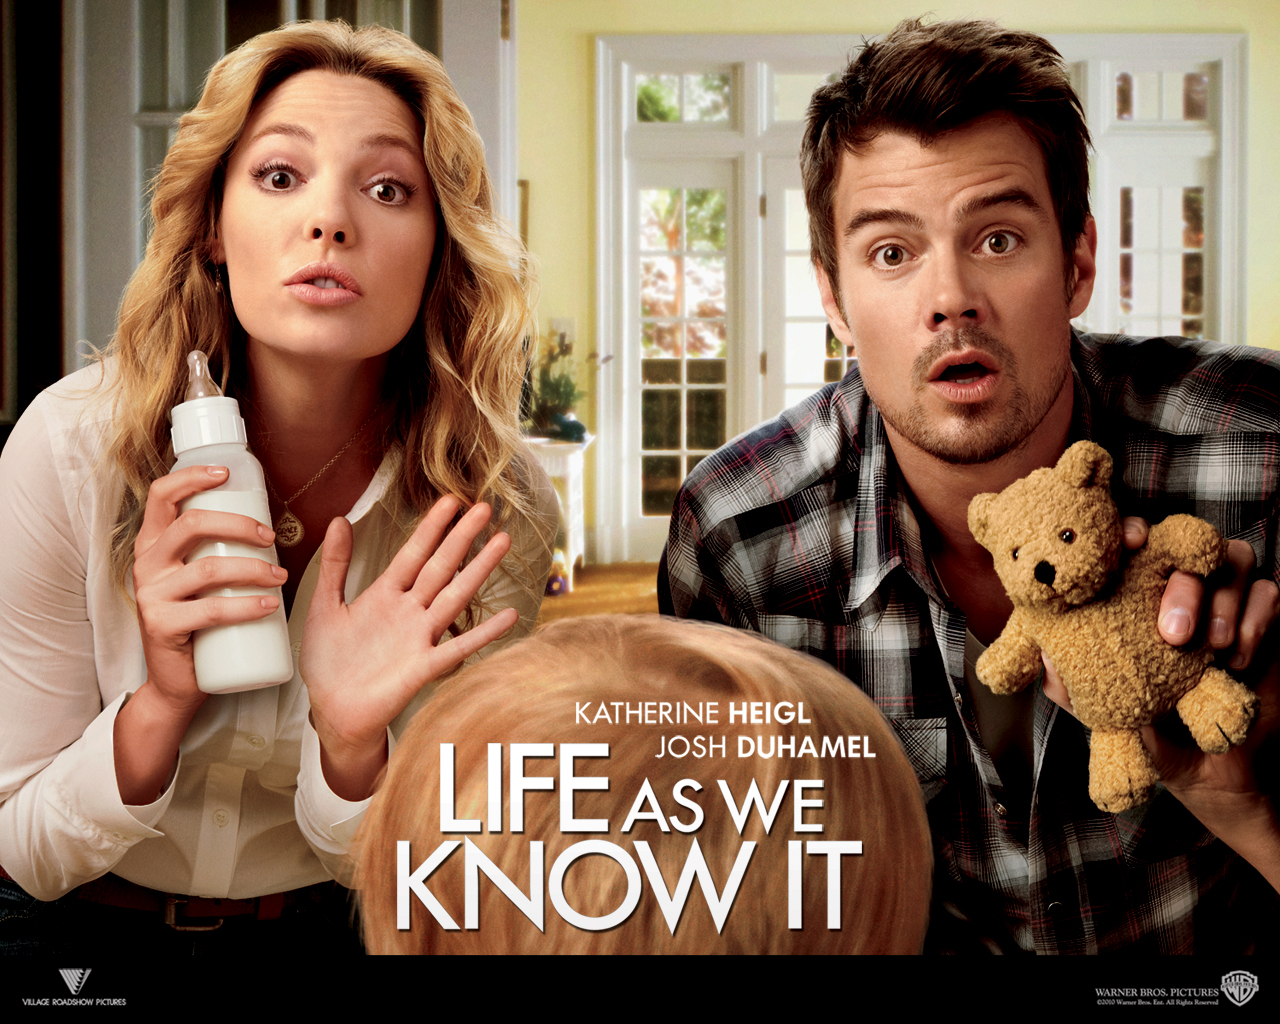 http://4.bp.blogspot.com/_ZAfQvJGGIOE/TUytoNbHo5I/AAAAAAAAA20/W3G4tmvpglM/s1600/Katherine_Heigl_in_Life_as_We_Know_It_14099.jpg